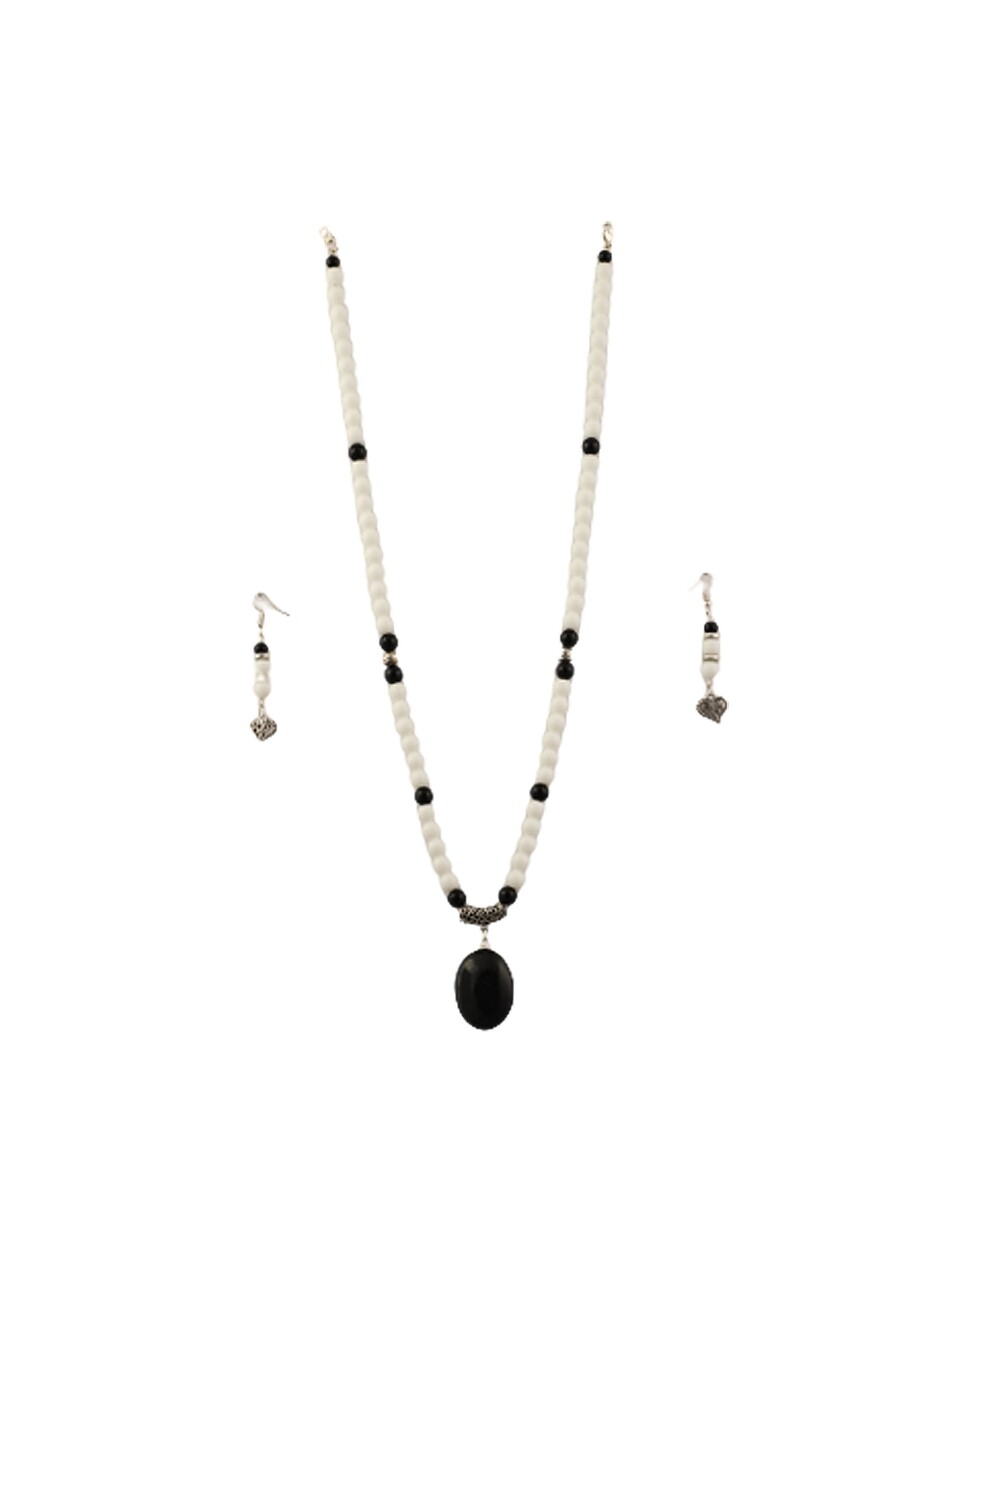 White Agate with Black Tourmaline Necklace